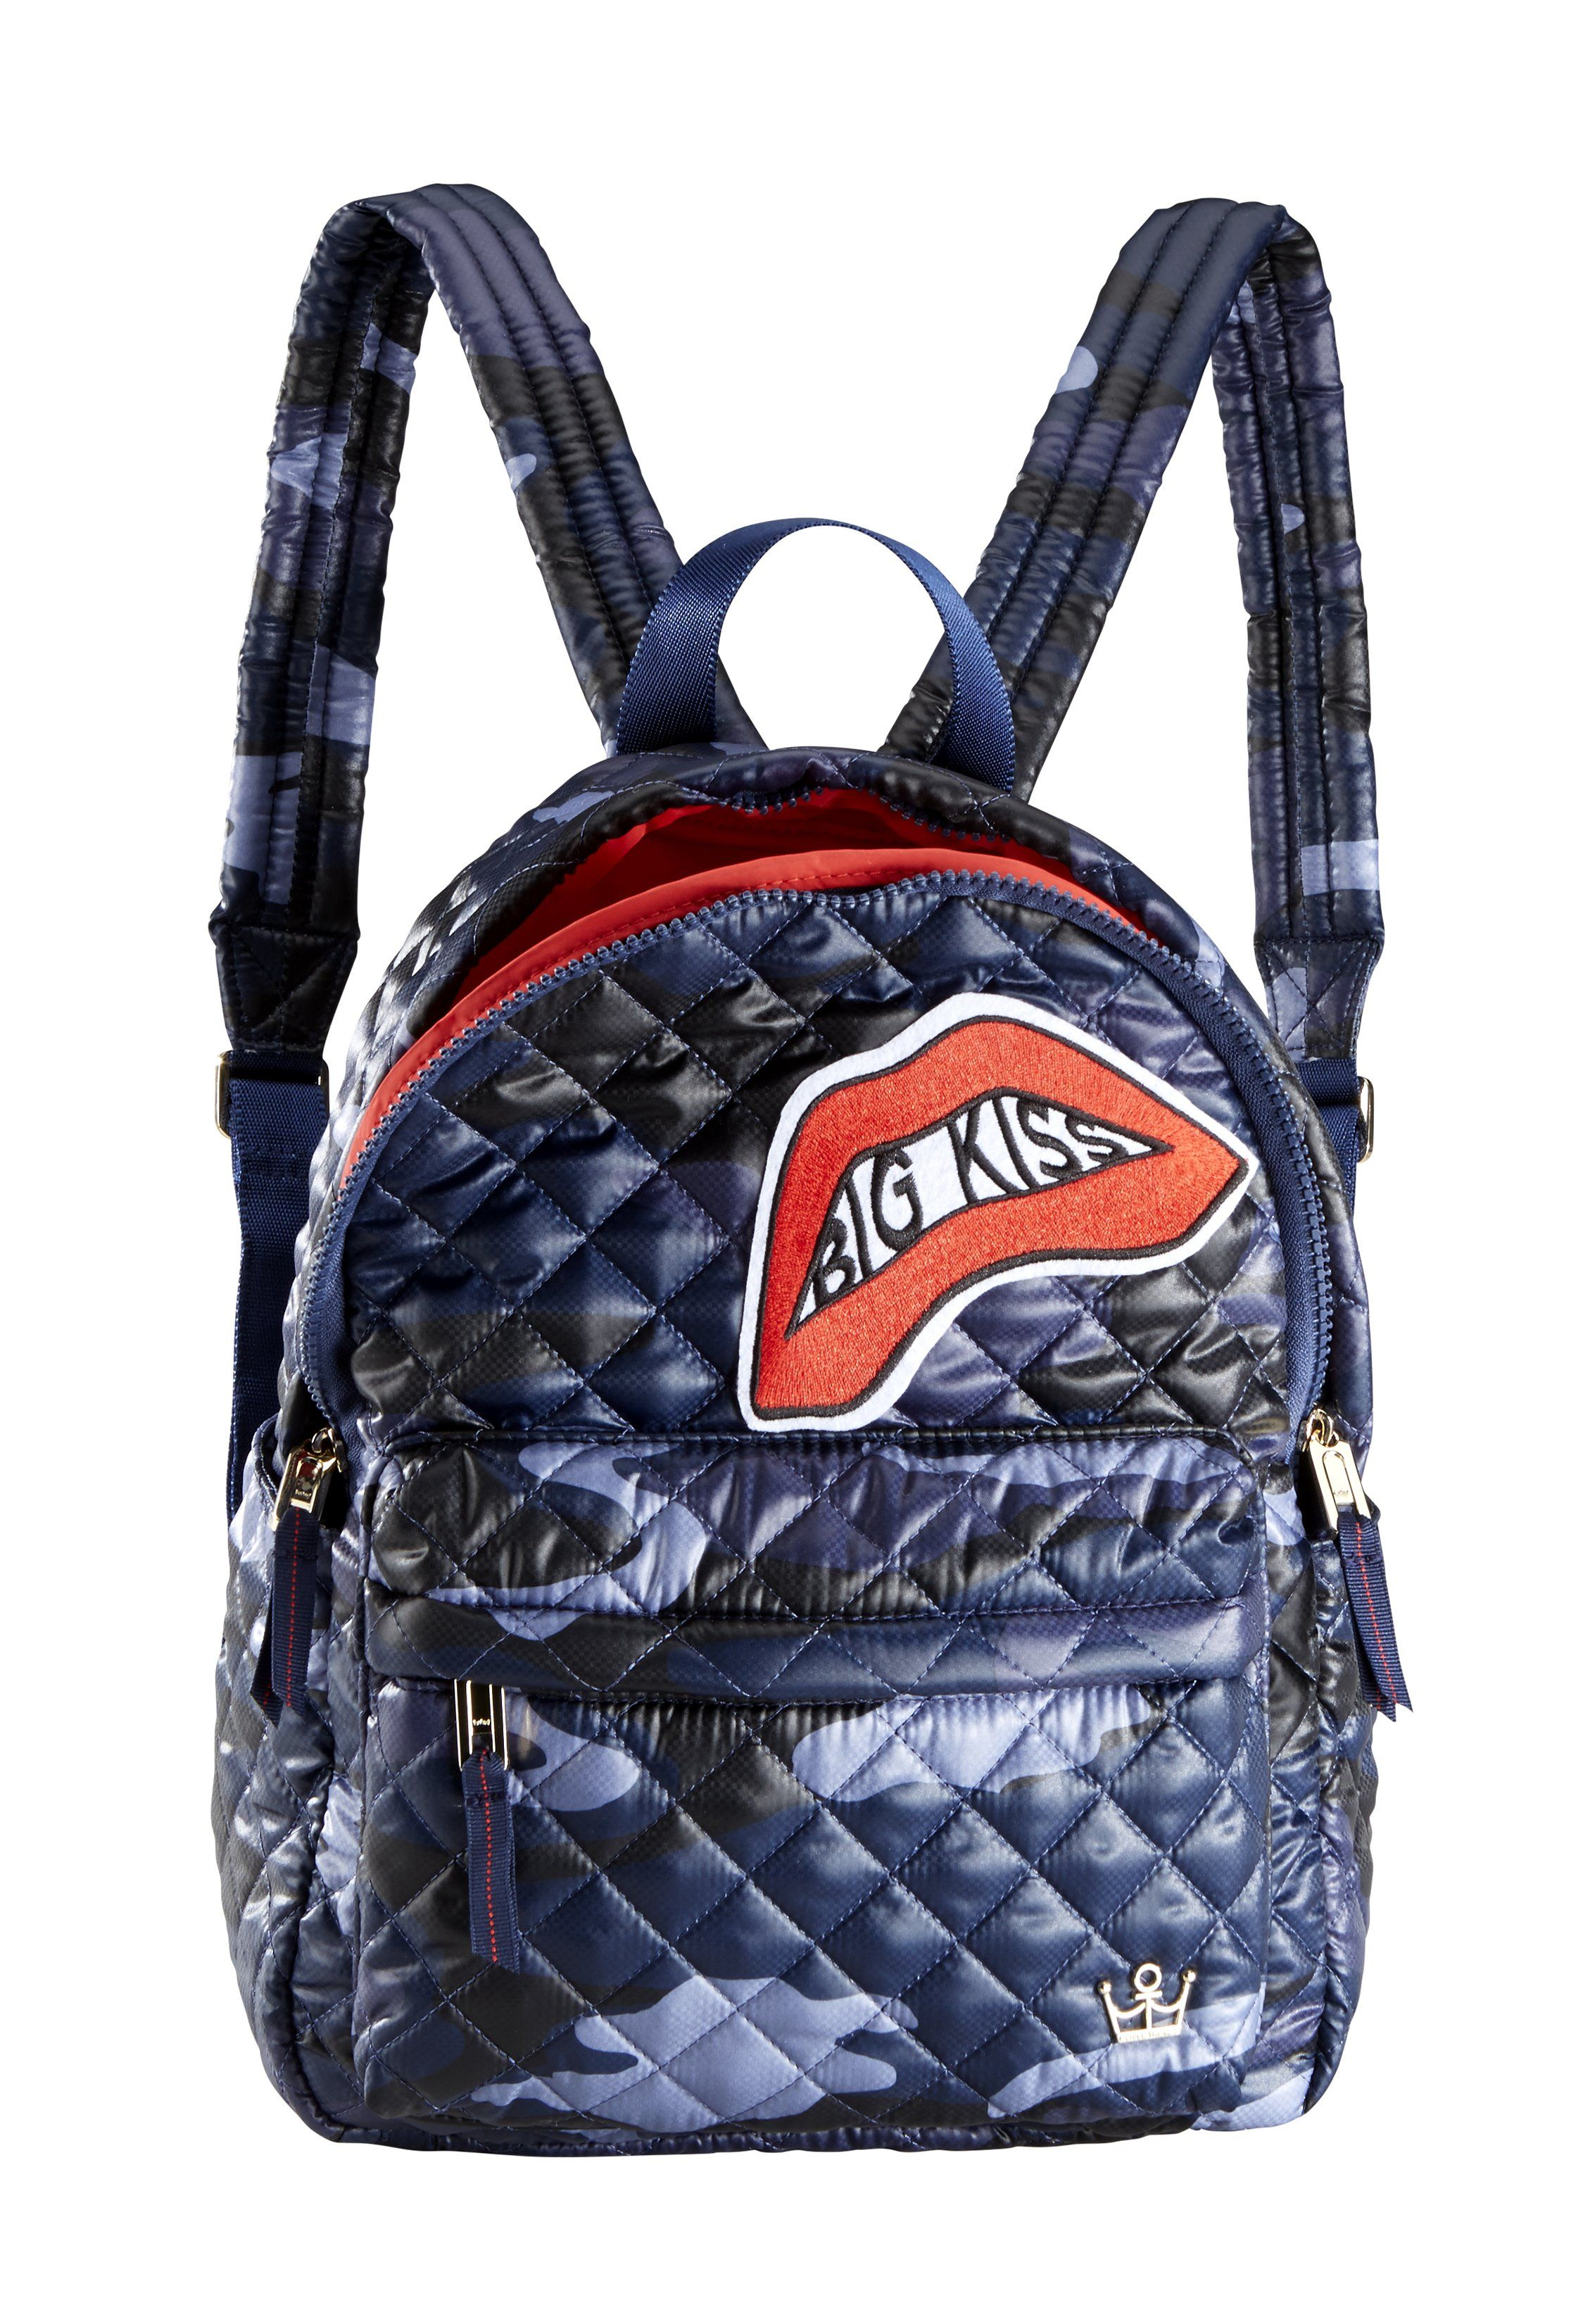 24 + 7 Small Backpack A collection of stylish bags that